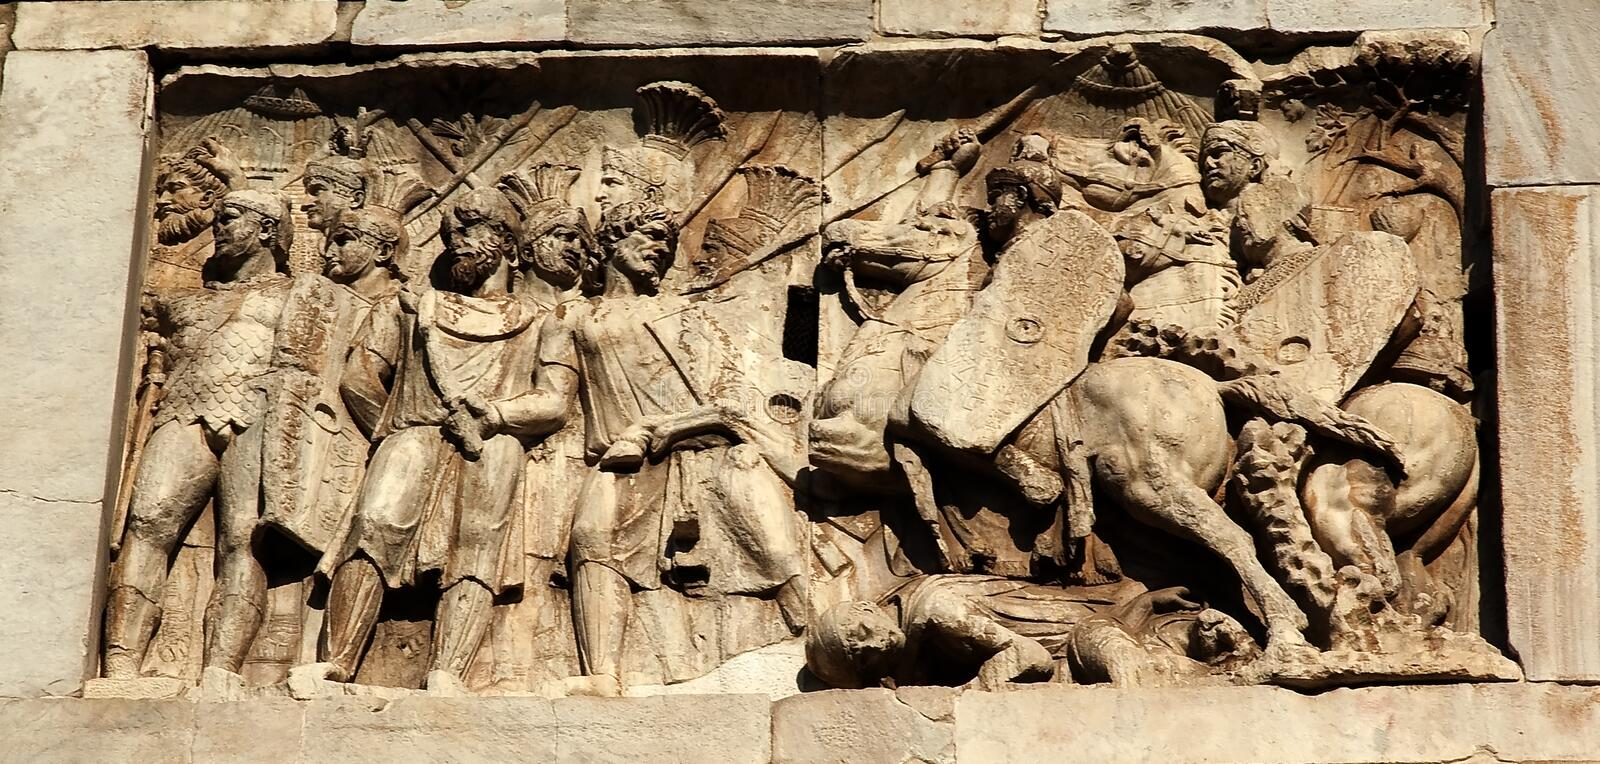 Download Details Constantine Arch Roman Soldiers Rome Stock Image - Image of forum, history: 10341621